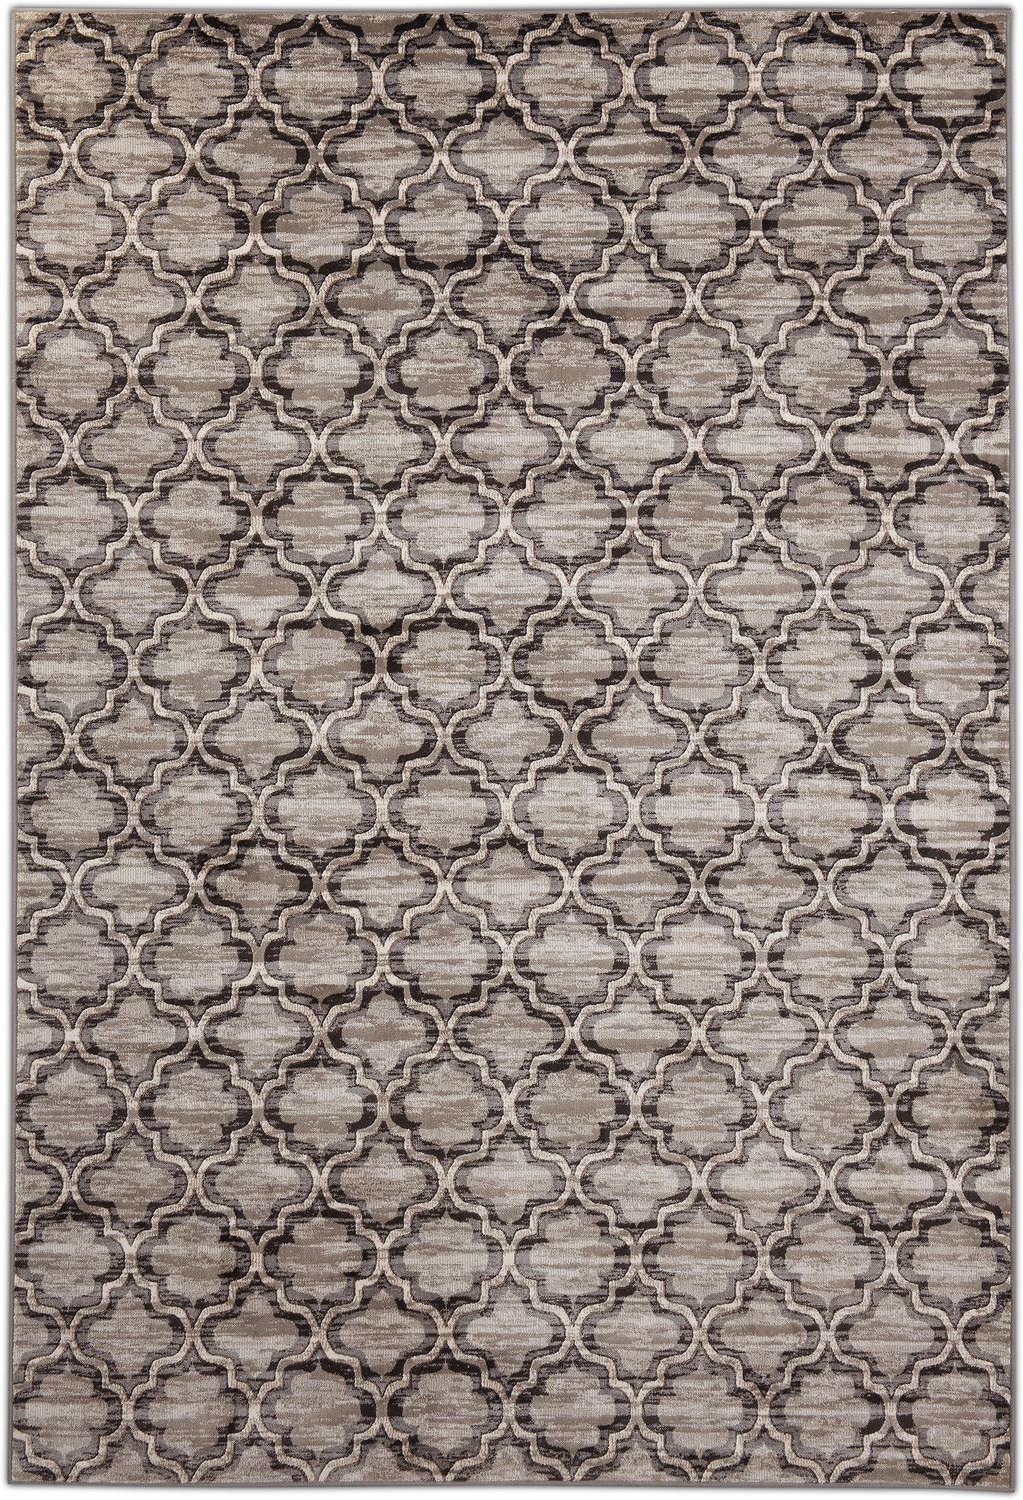 Rugs - Sonoma Area Rug - Gray and Black